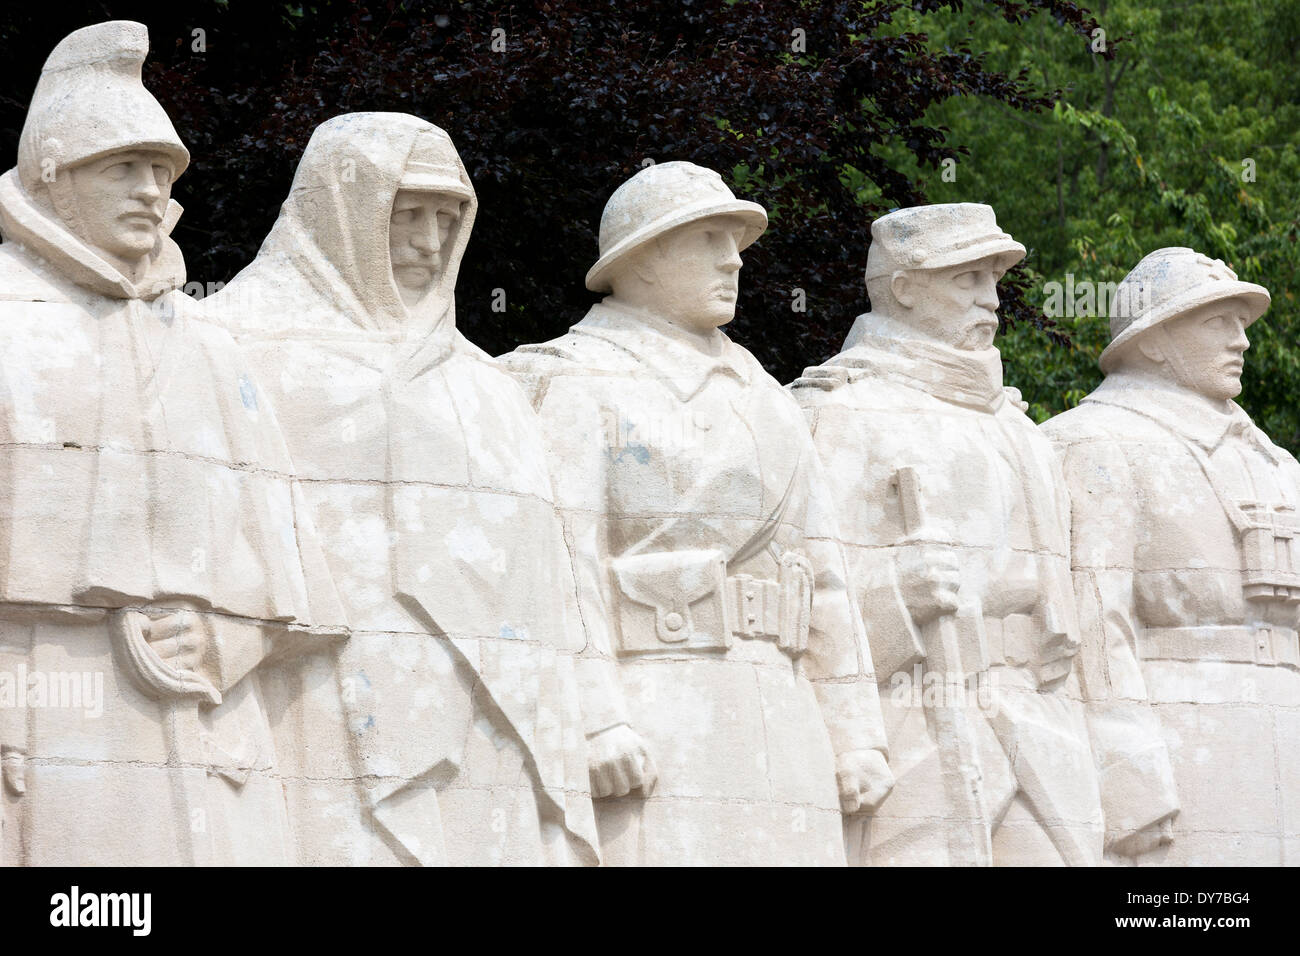 World War One Monument for Sons of Verdun - cavalry, artillery, territorial, infantry,  colonial and named dead soldiers, France - Stock Image